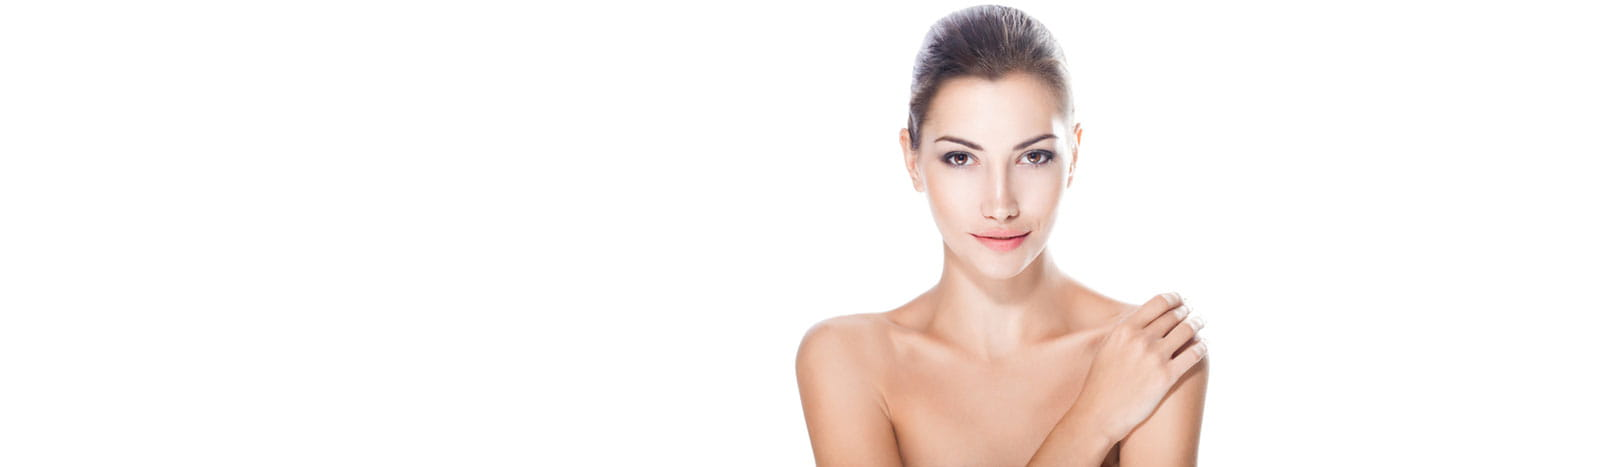 San Francisco Medical Spa Botox San Mateo Ca Med Spa Injections